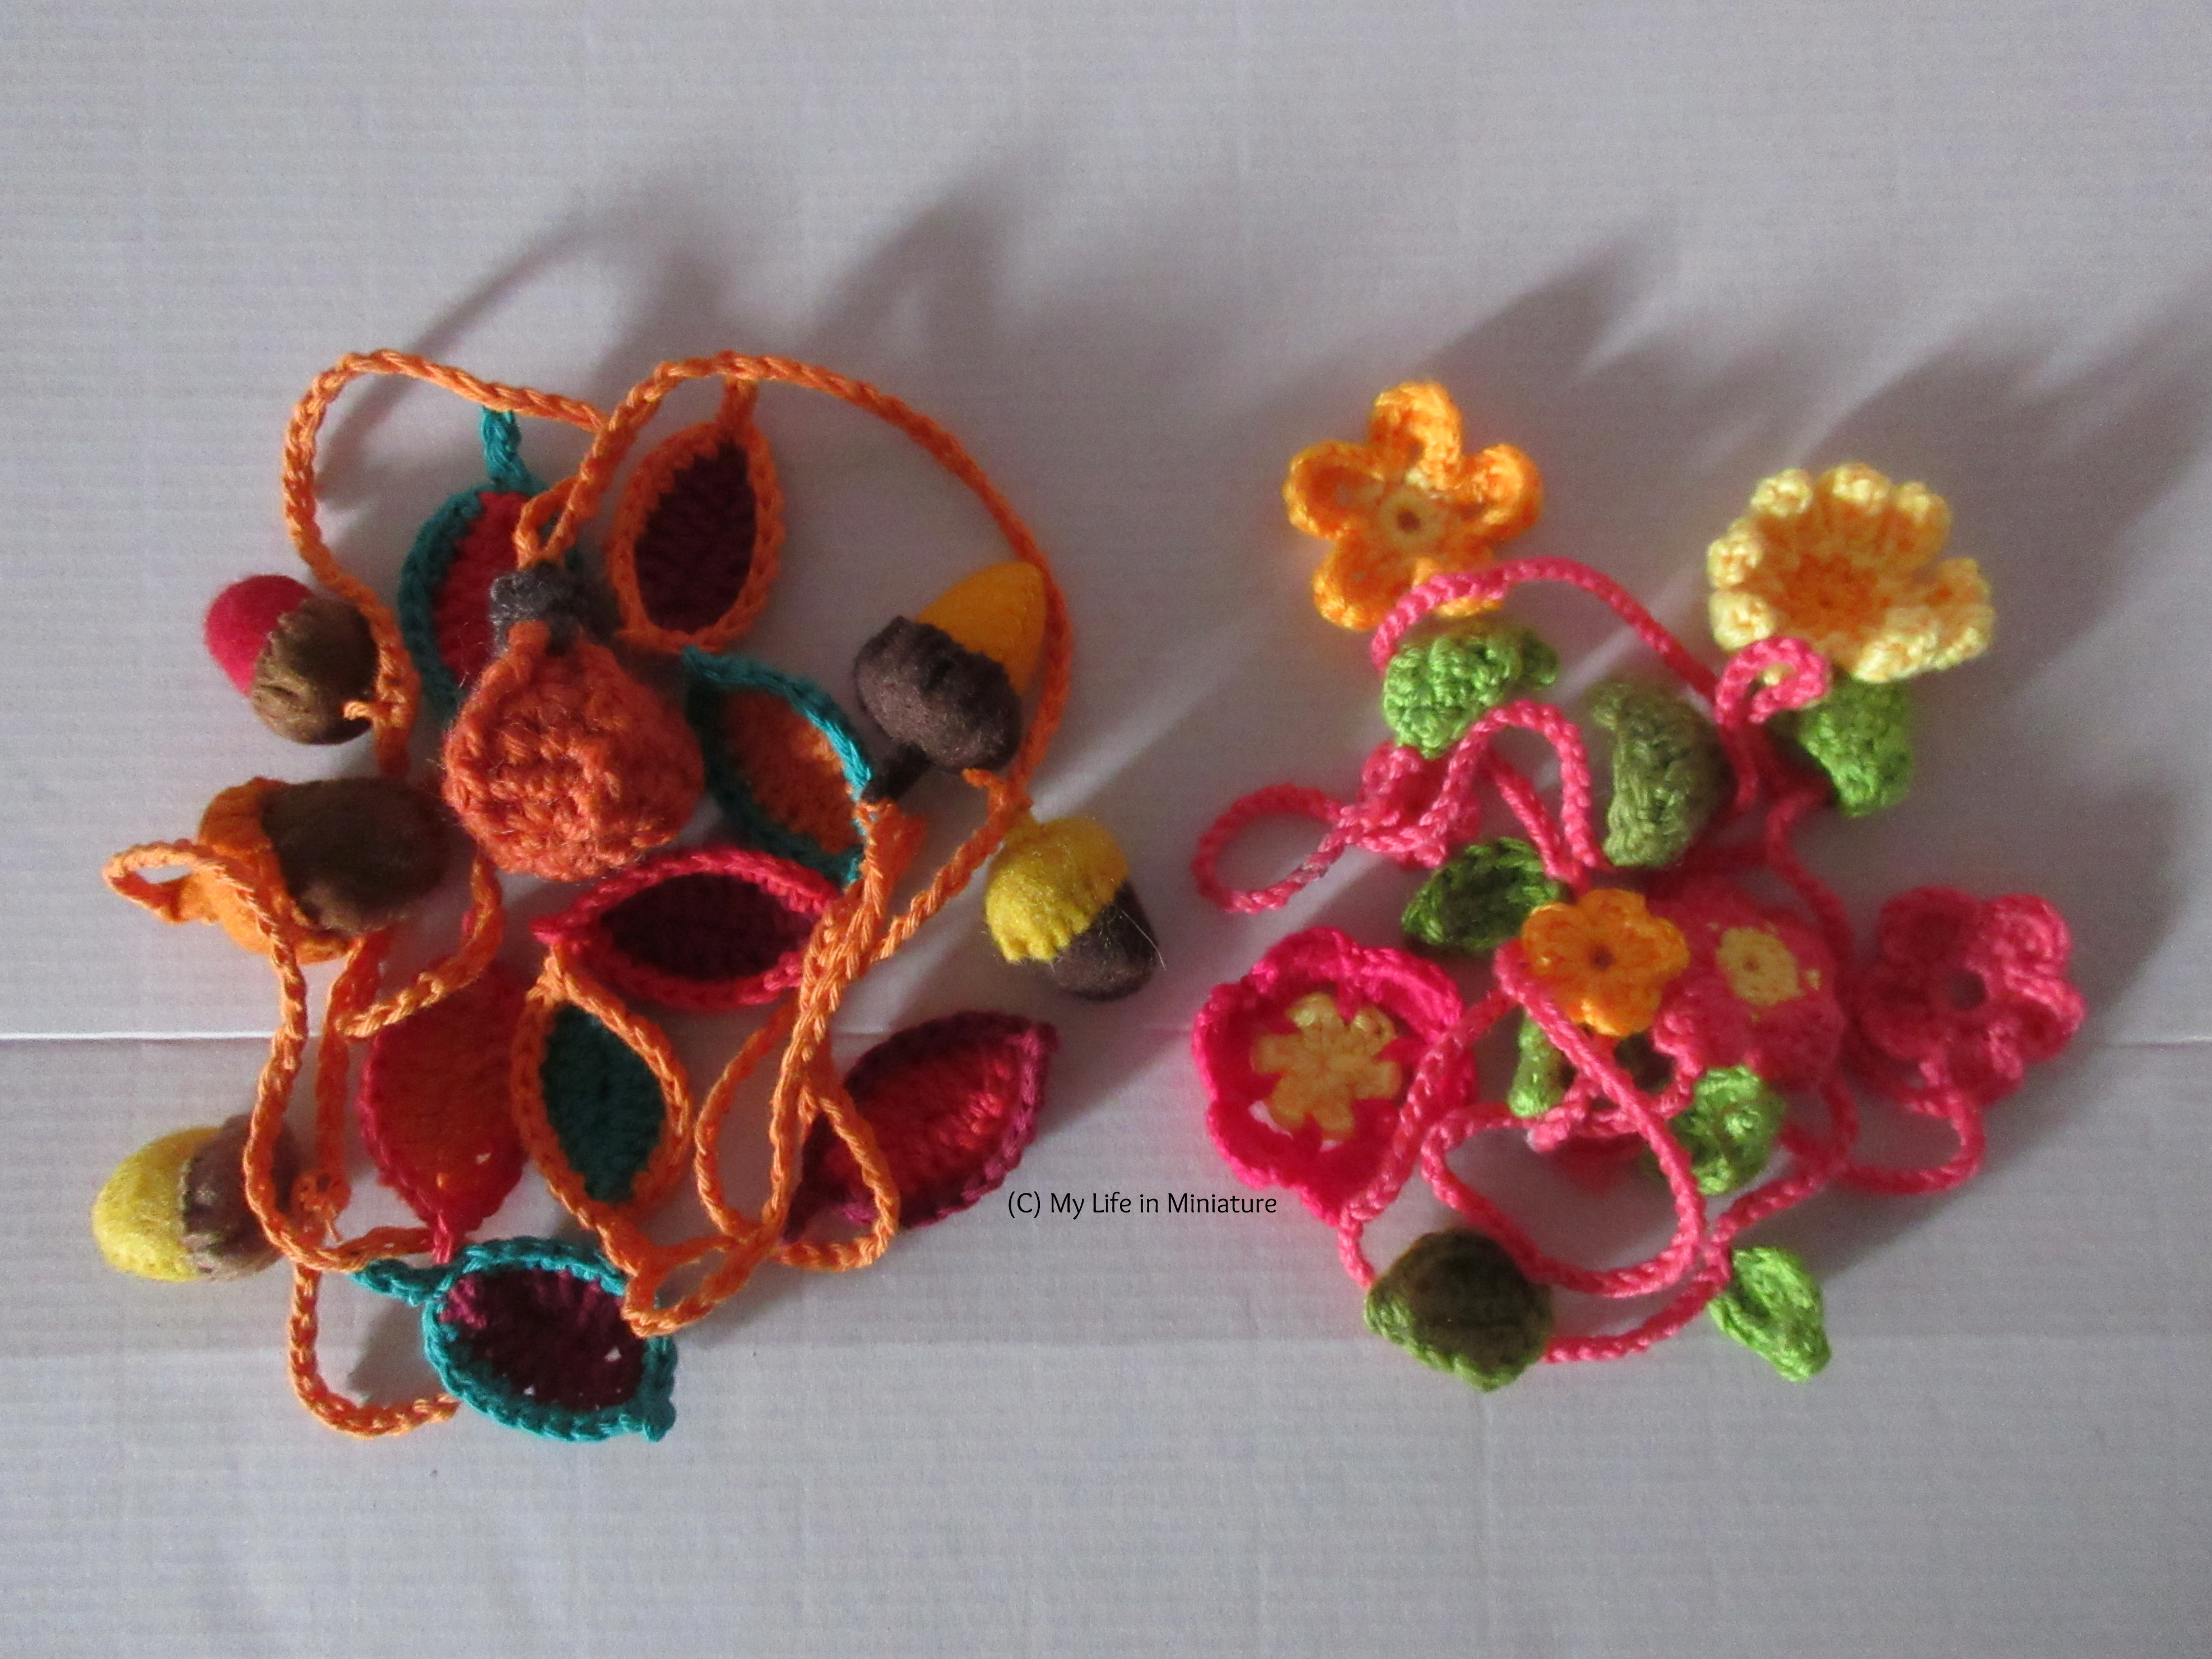 The autumn garland sits in a pile next to a pink floral spring garland on a white background.